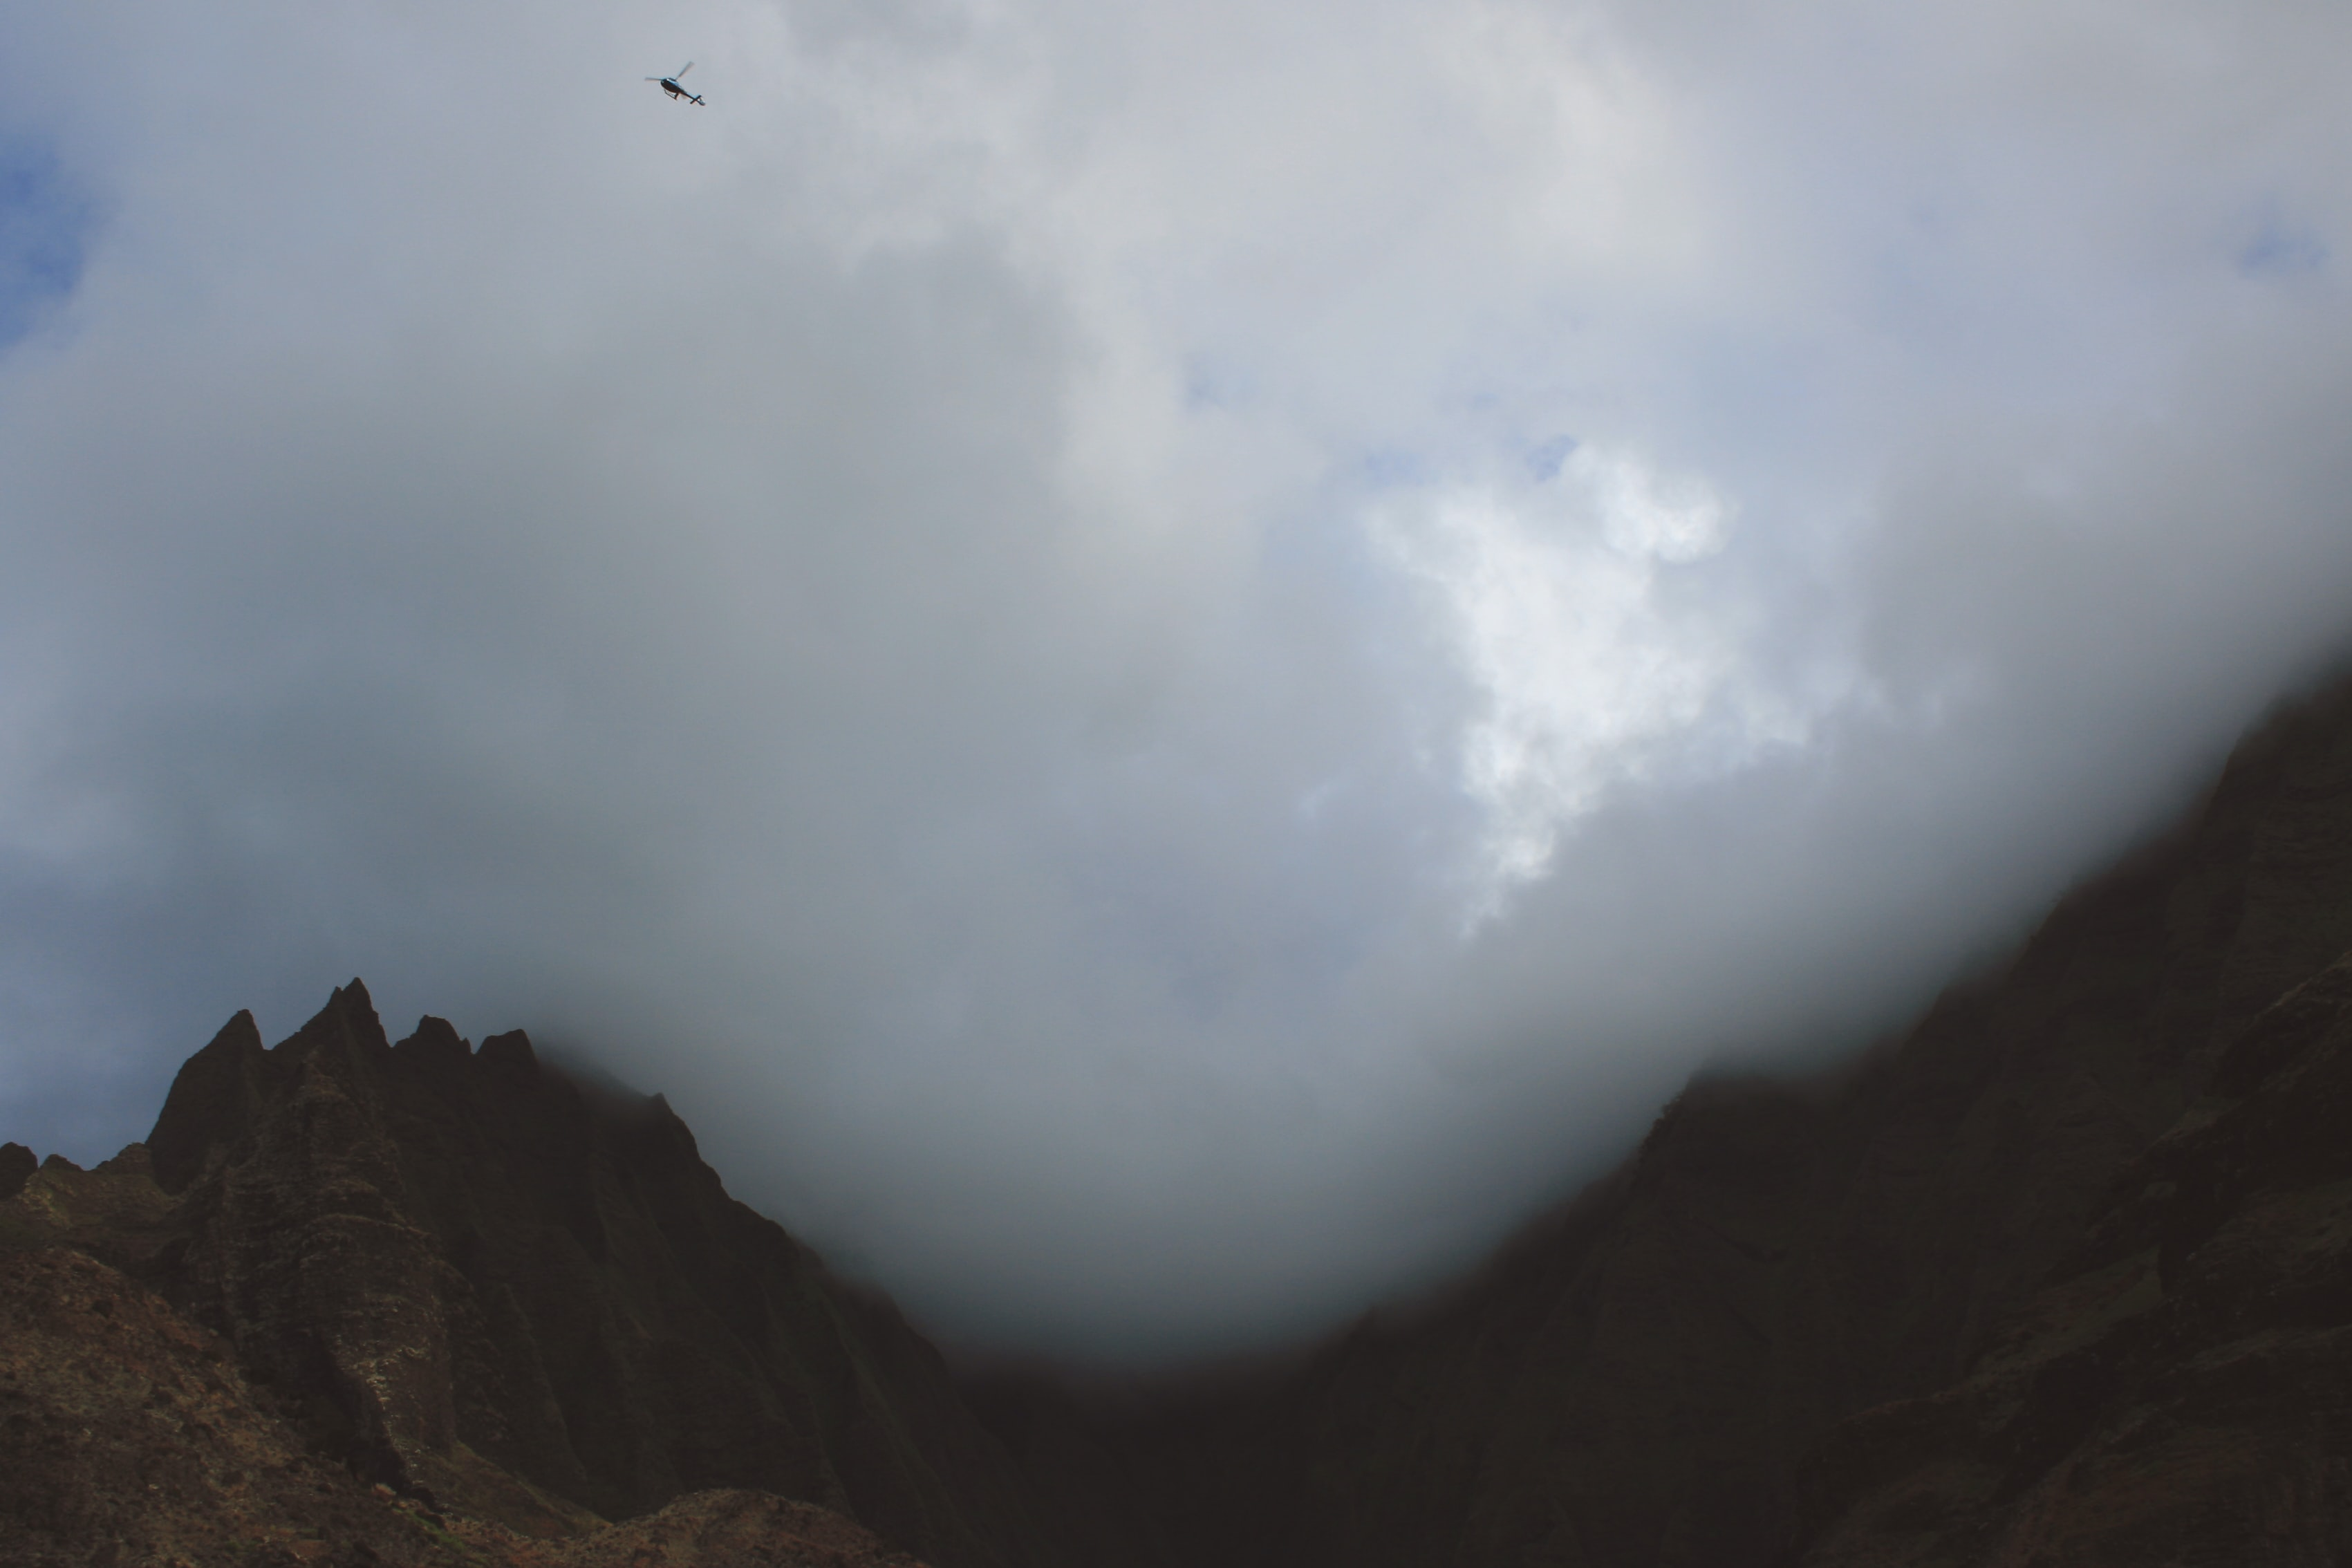 A helicopter flies through billowing clouds over a mountain landscape